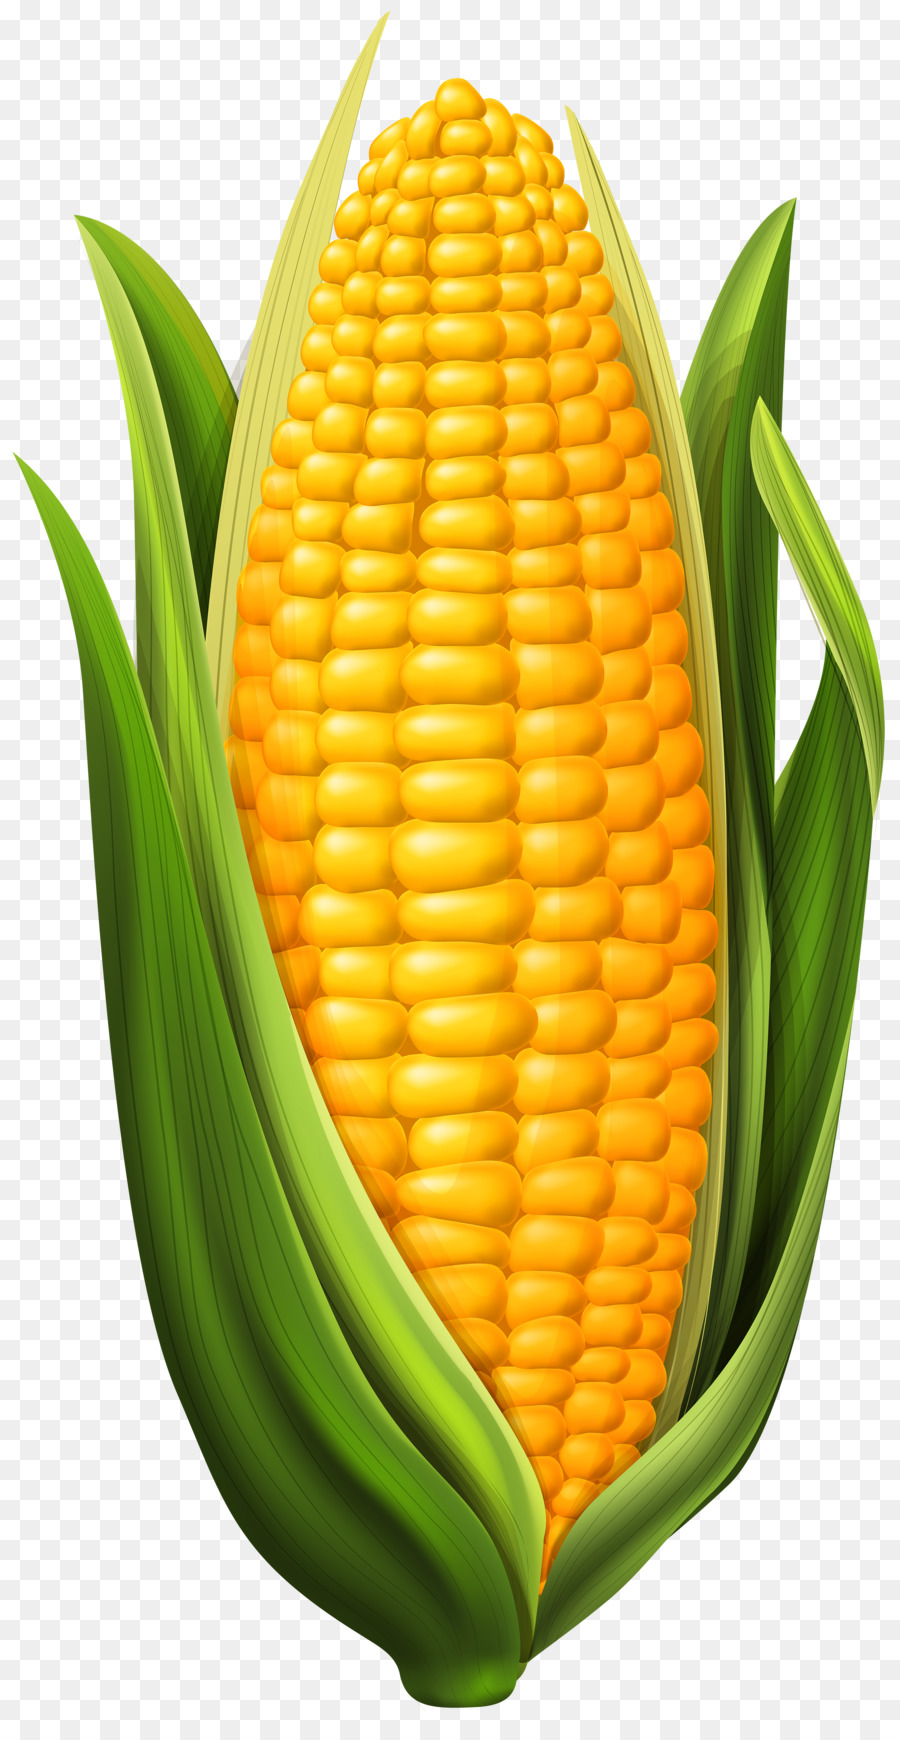 Clipart of corn on the cob graphic library stock Candy Corn clipart - Food, transparent clip art graphic library stock